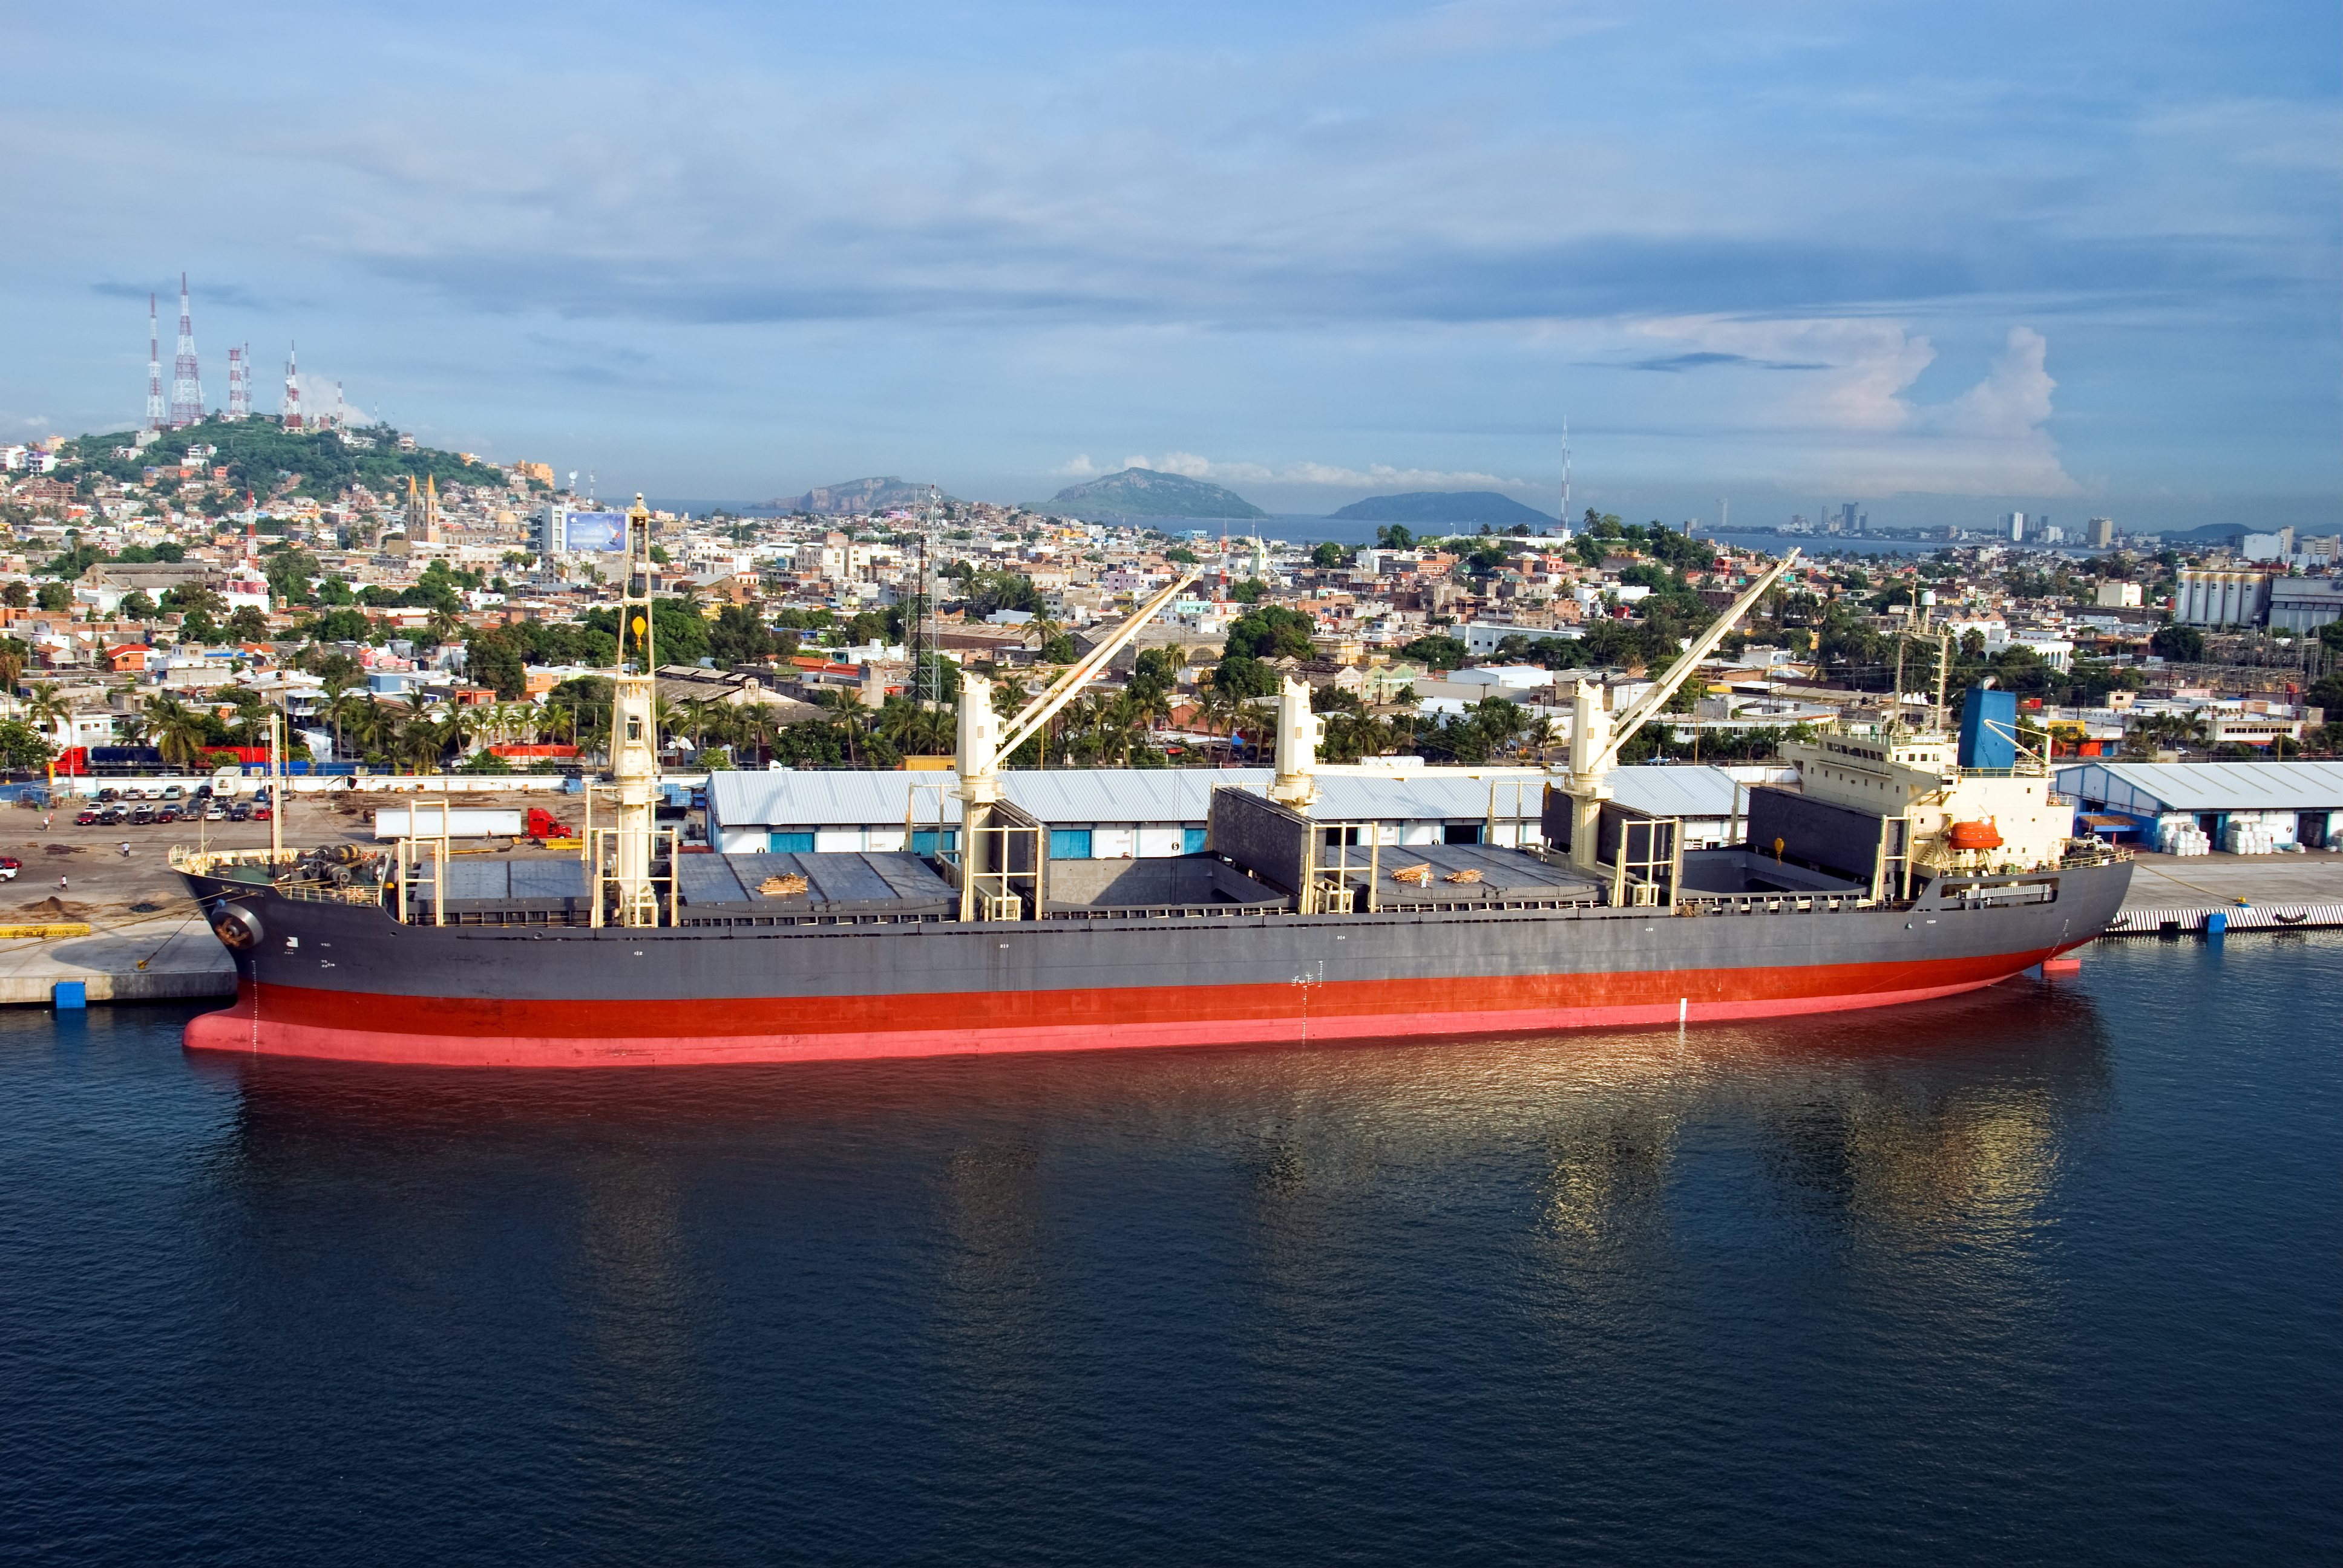 Cuba's location gives it big potential for transhipment